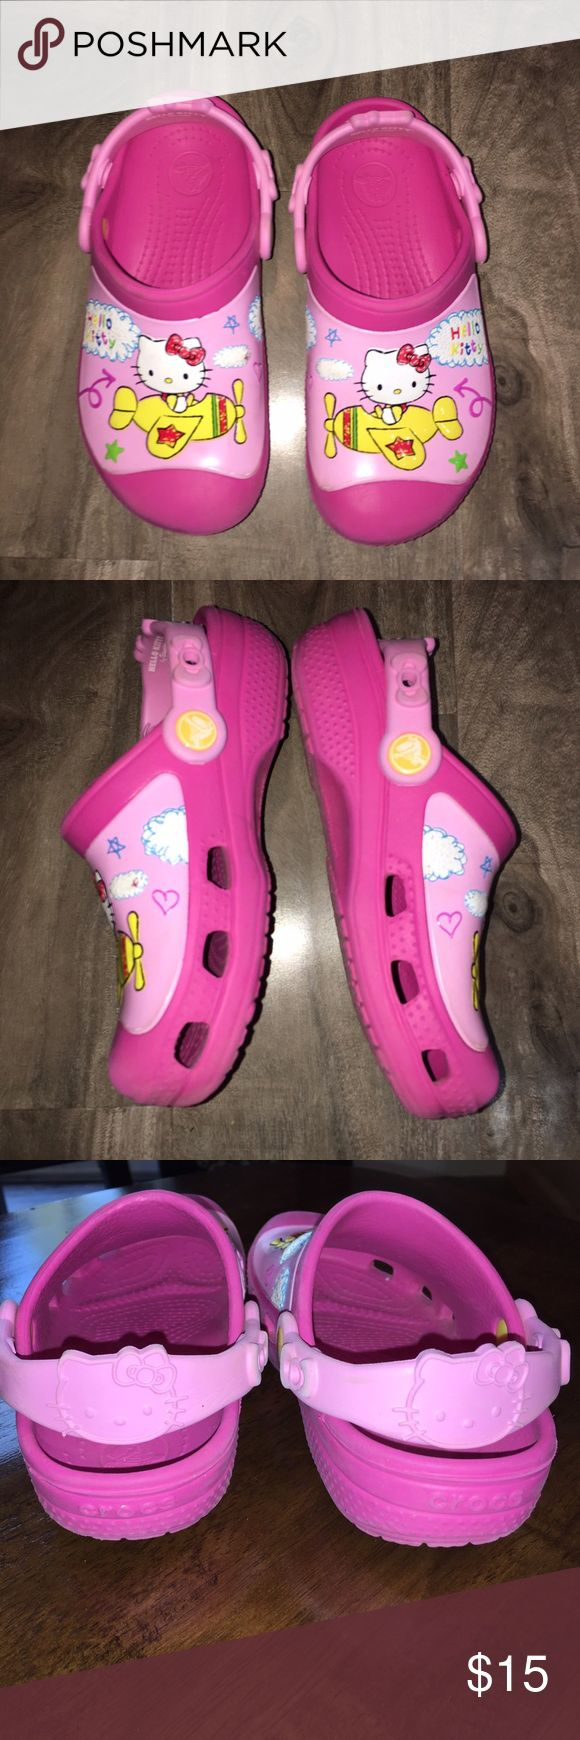 Crocs Hello Kitty size 12/13 Very good condition by Crocs, size 12/13. Hello Kitty CROCS Shoes Sandals & Flip Flops